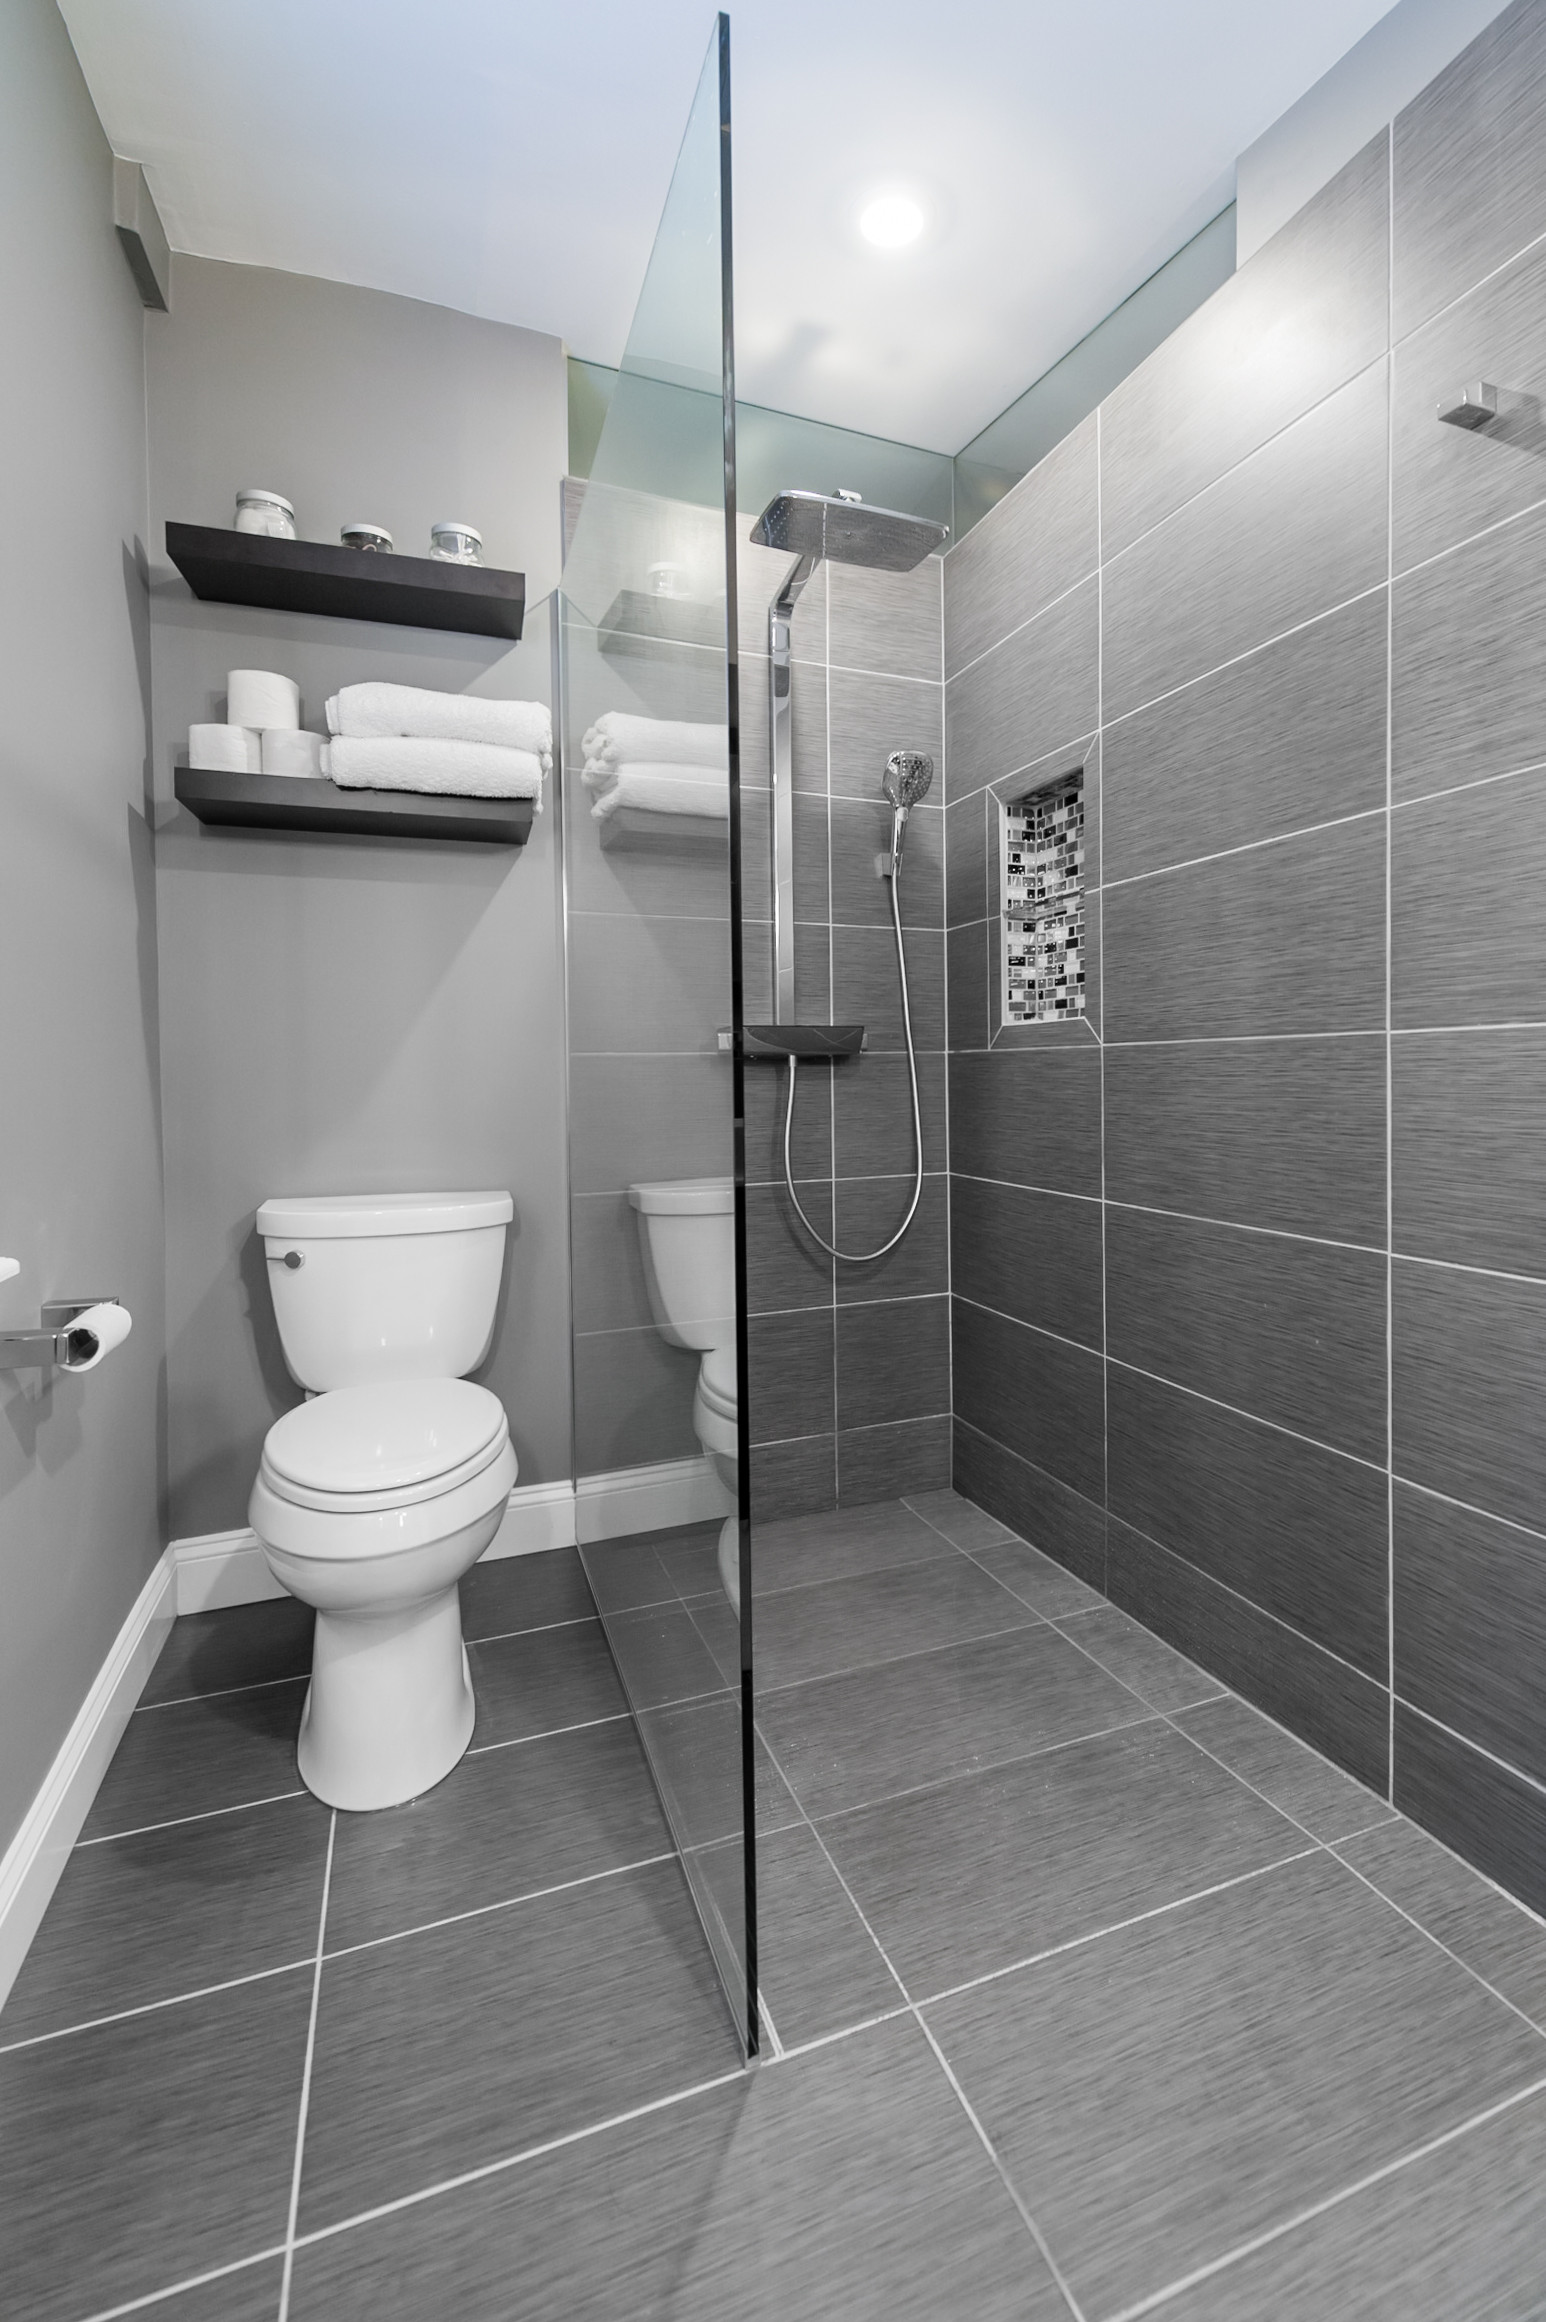 Small Bathroom With Walk In Shower Remodel Ideas Image Of Bathroom And Closet